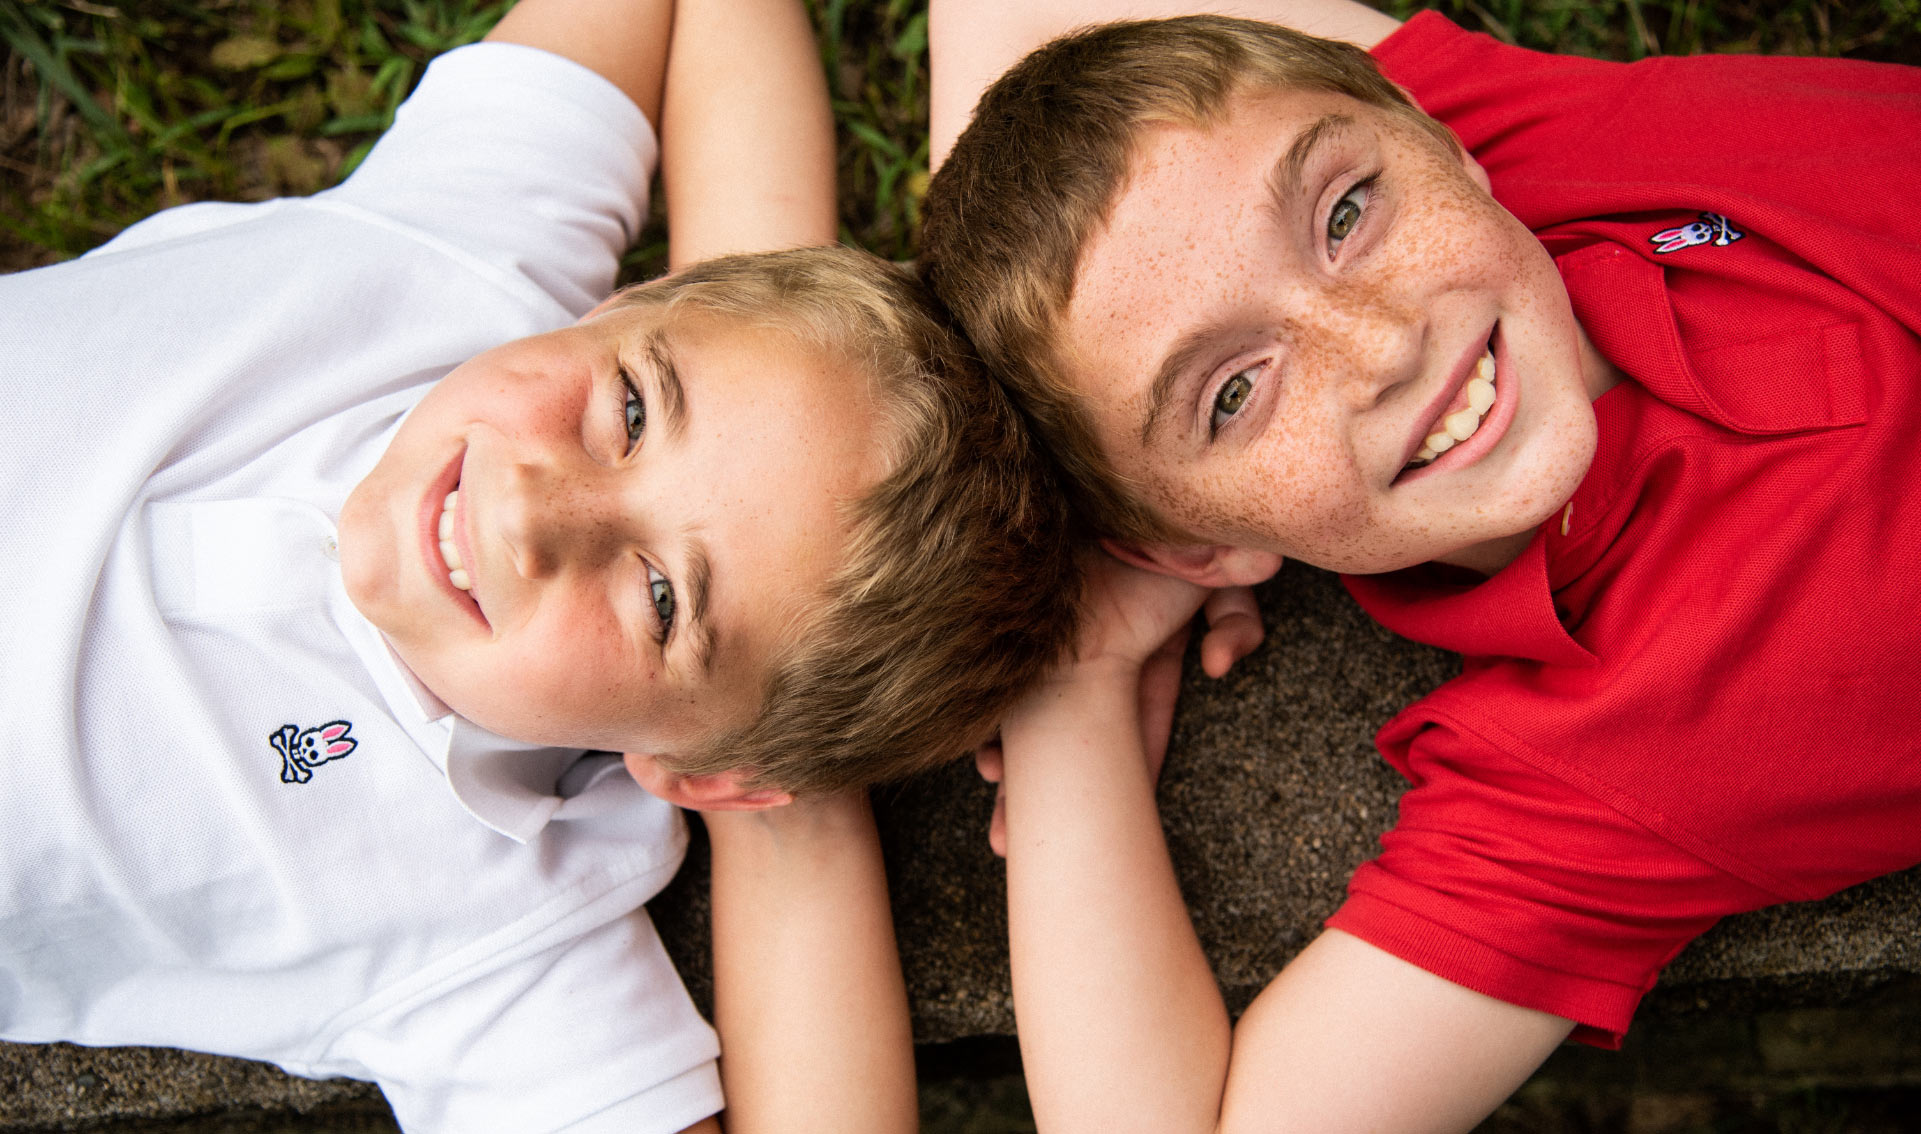 An overhead close-up shot of Max and his twin brother. Both are laying on the ground and have their hands behind their heads. Both are smiling.